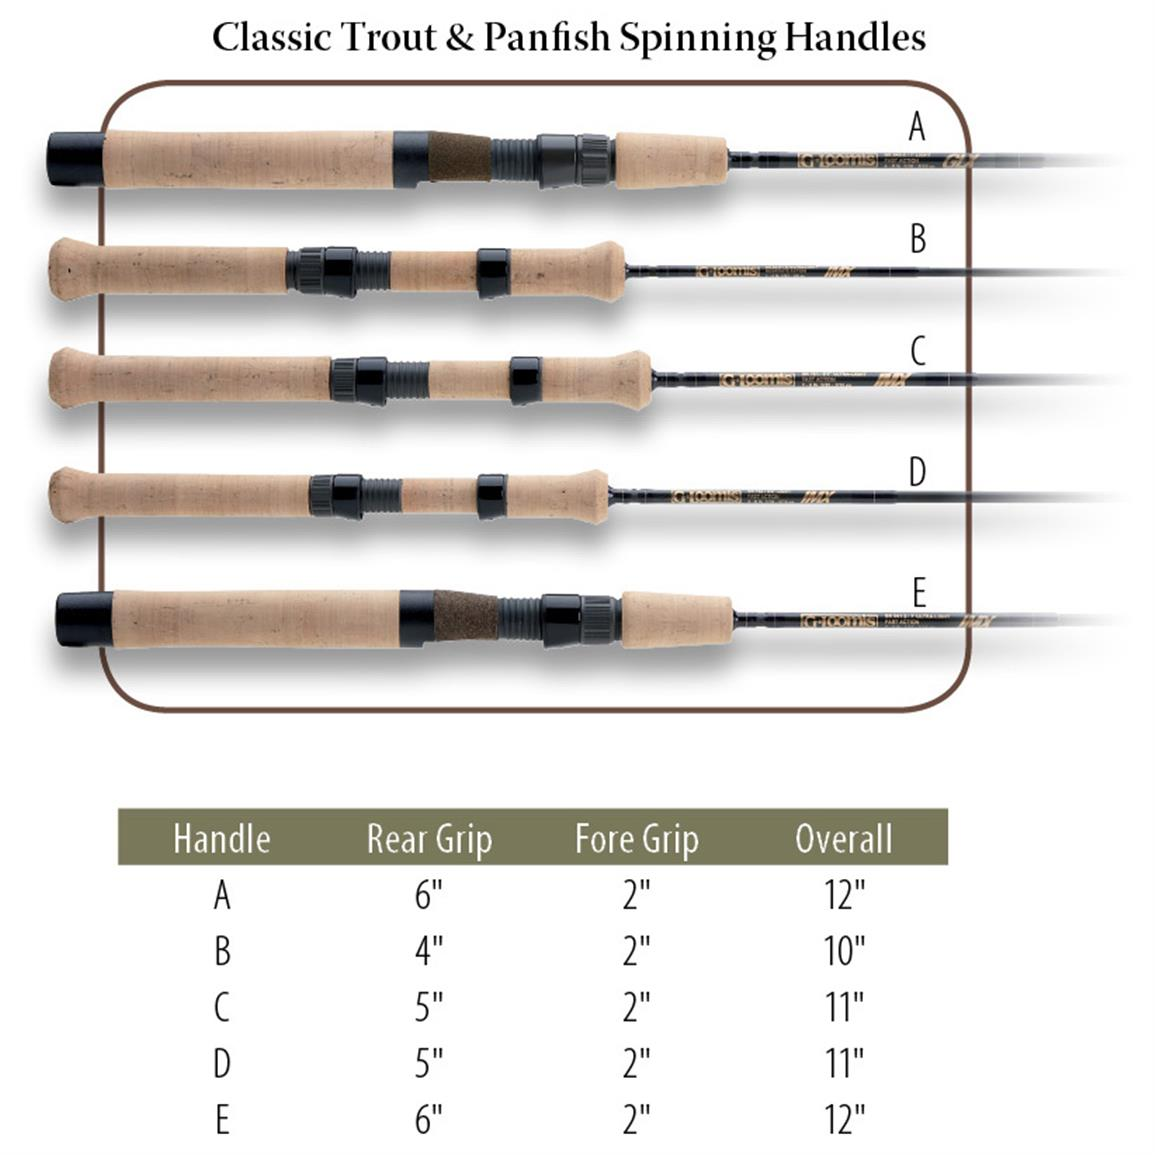 Classic Trout & Panfish Spinning Handles